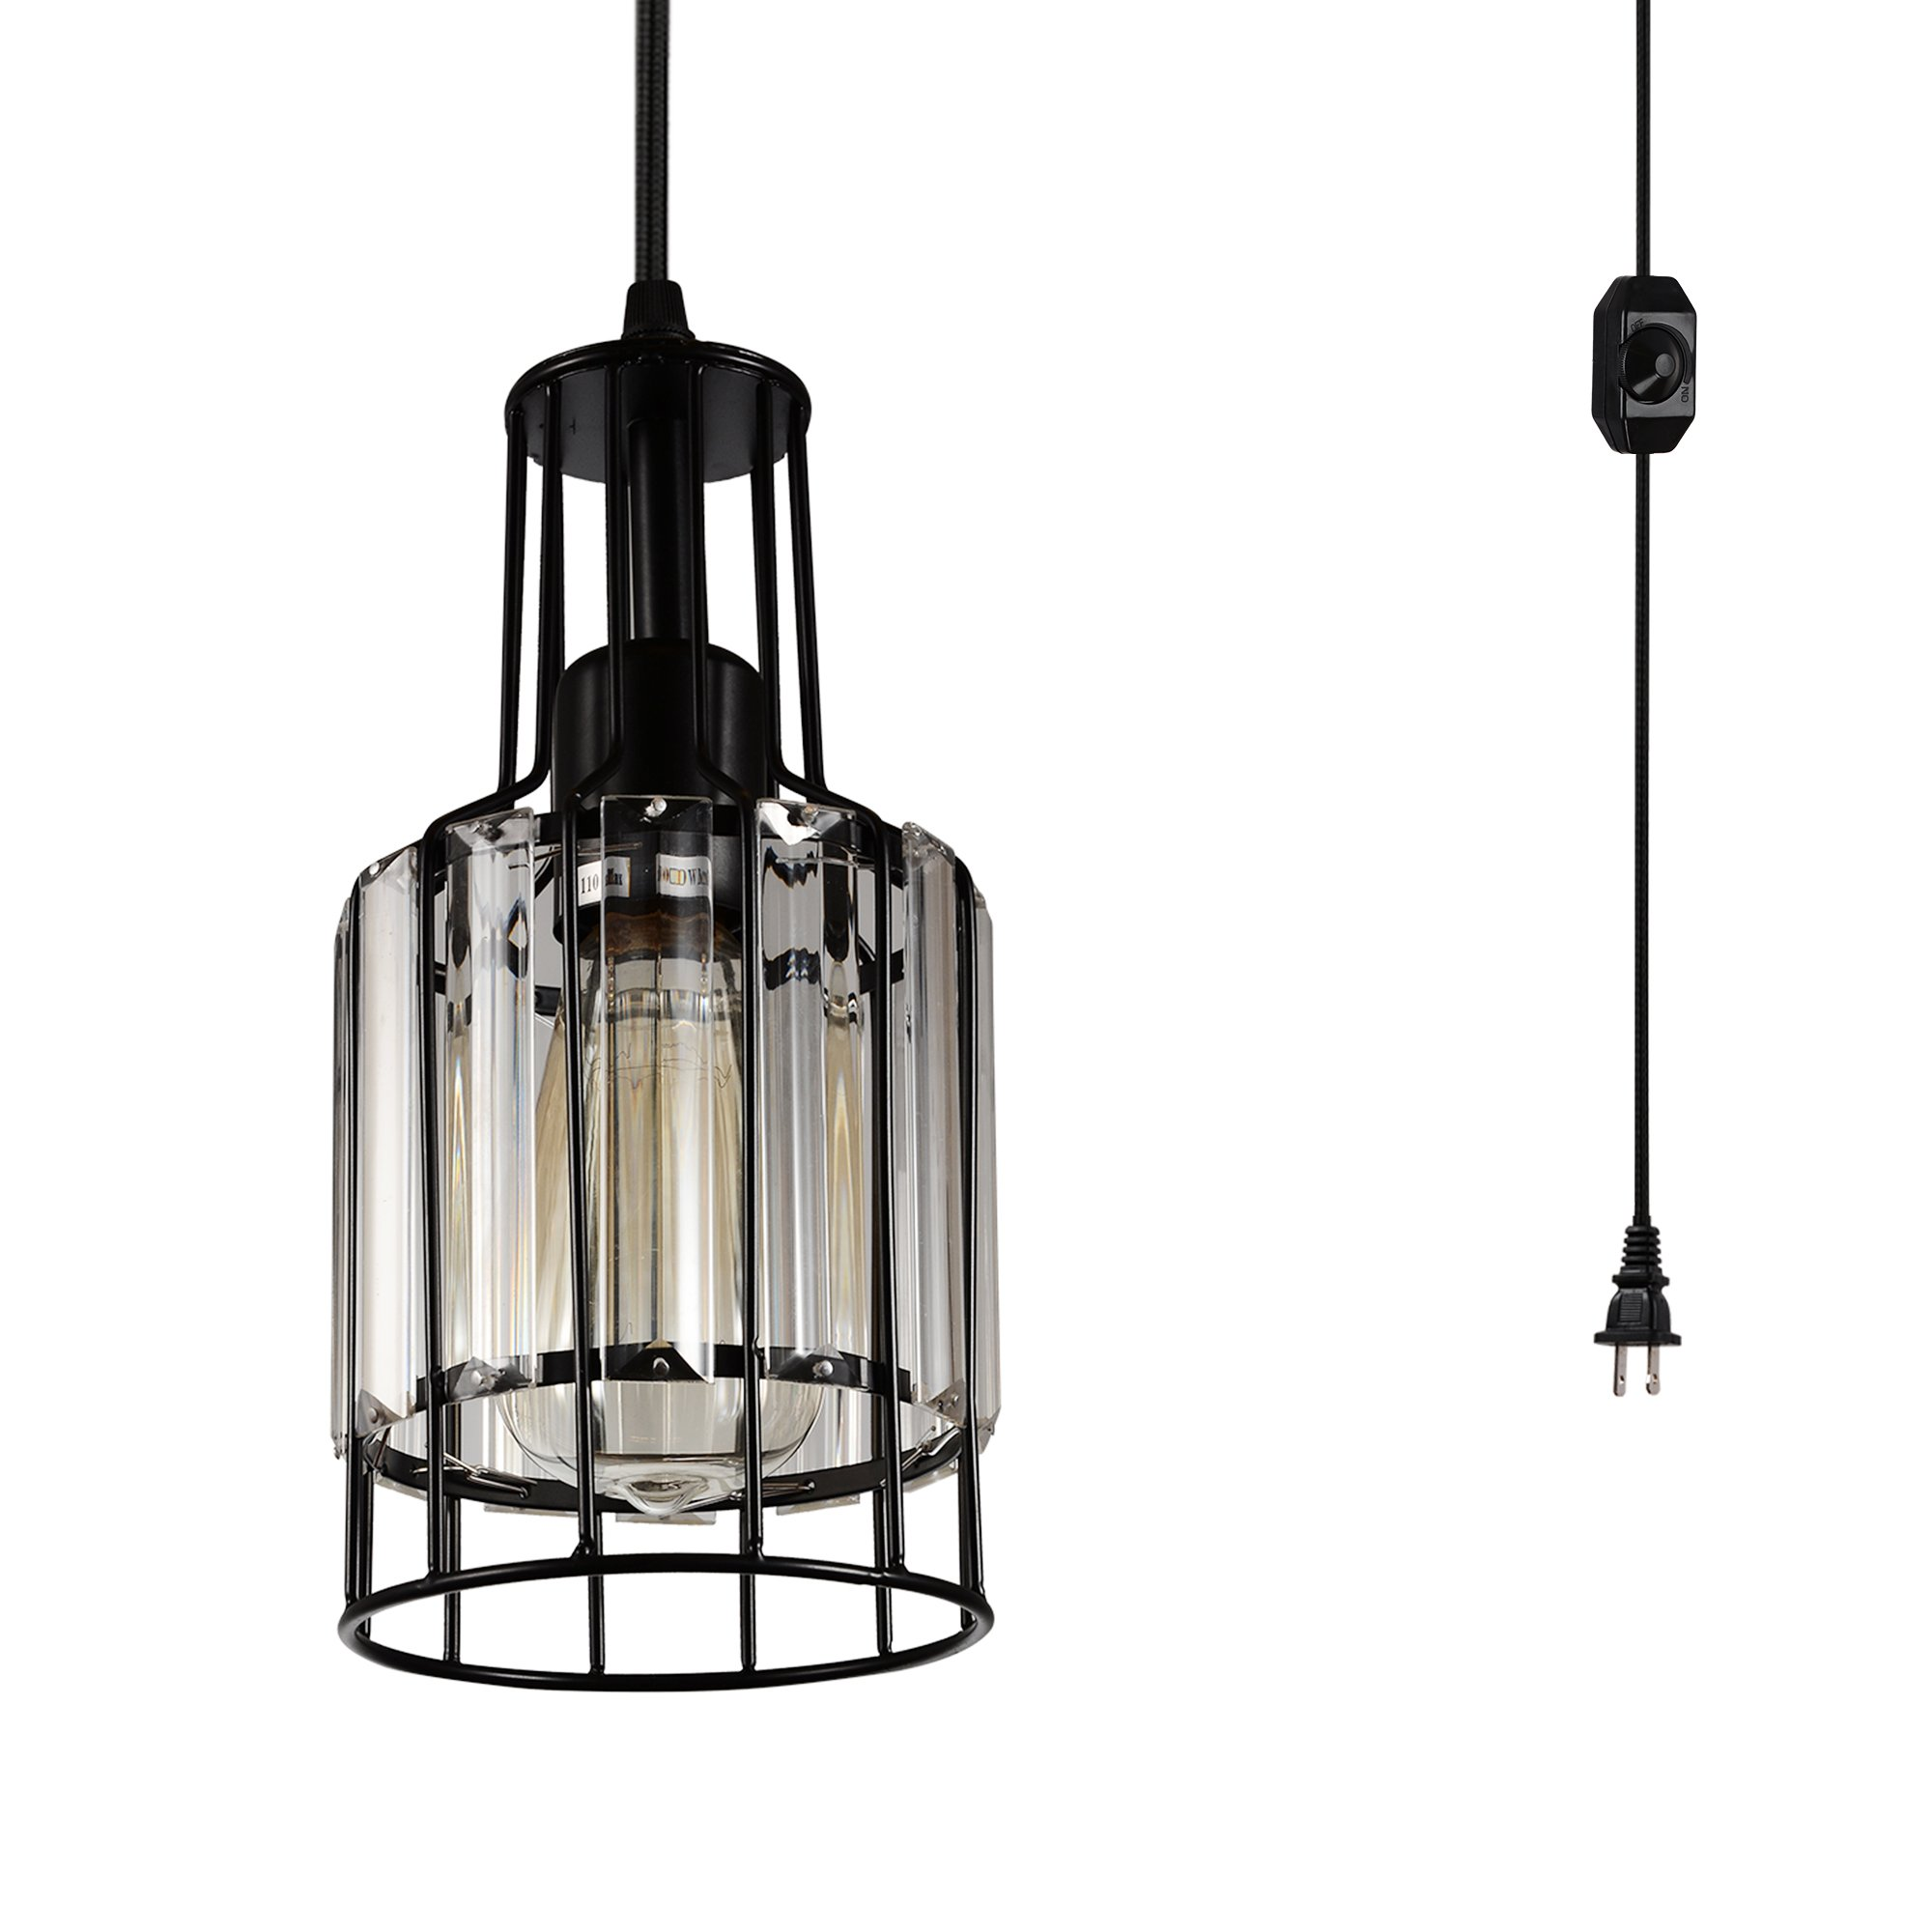 Creatgeek Plug in Crystal Pendant Light with 16 Ft Cord and In-Line On/Off Dimmer Switch, Unique Swag Hanging Lamp for Room Corner, Night Stand, Kitchen Island or Dining Room